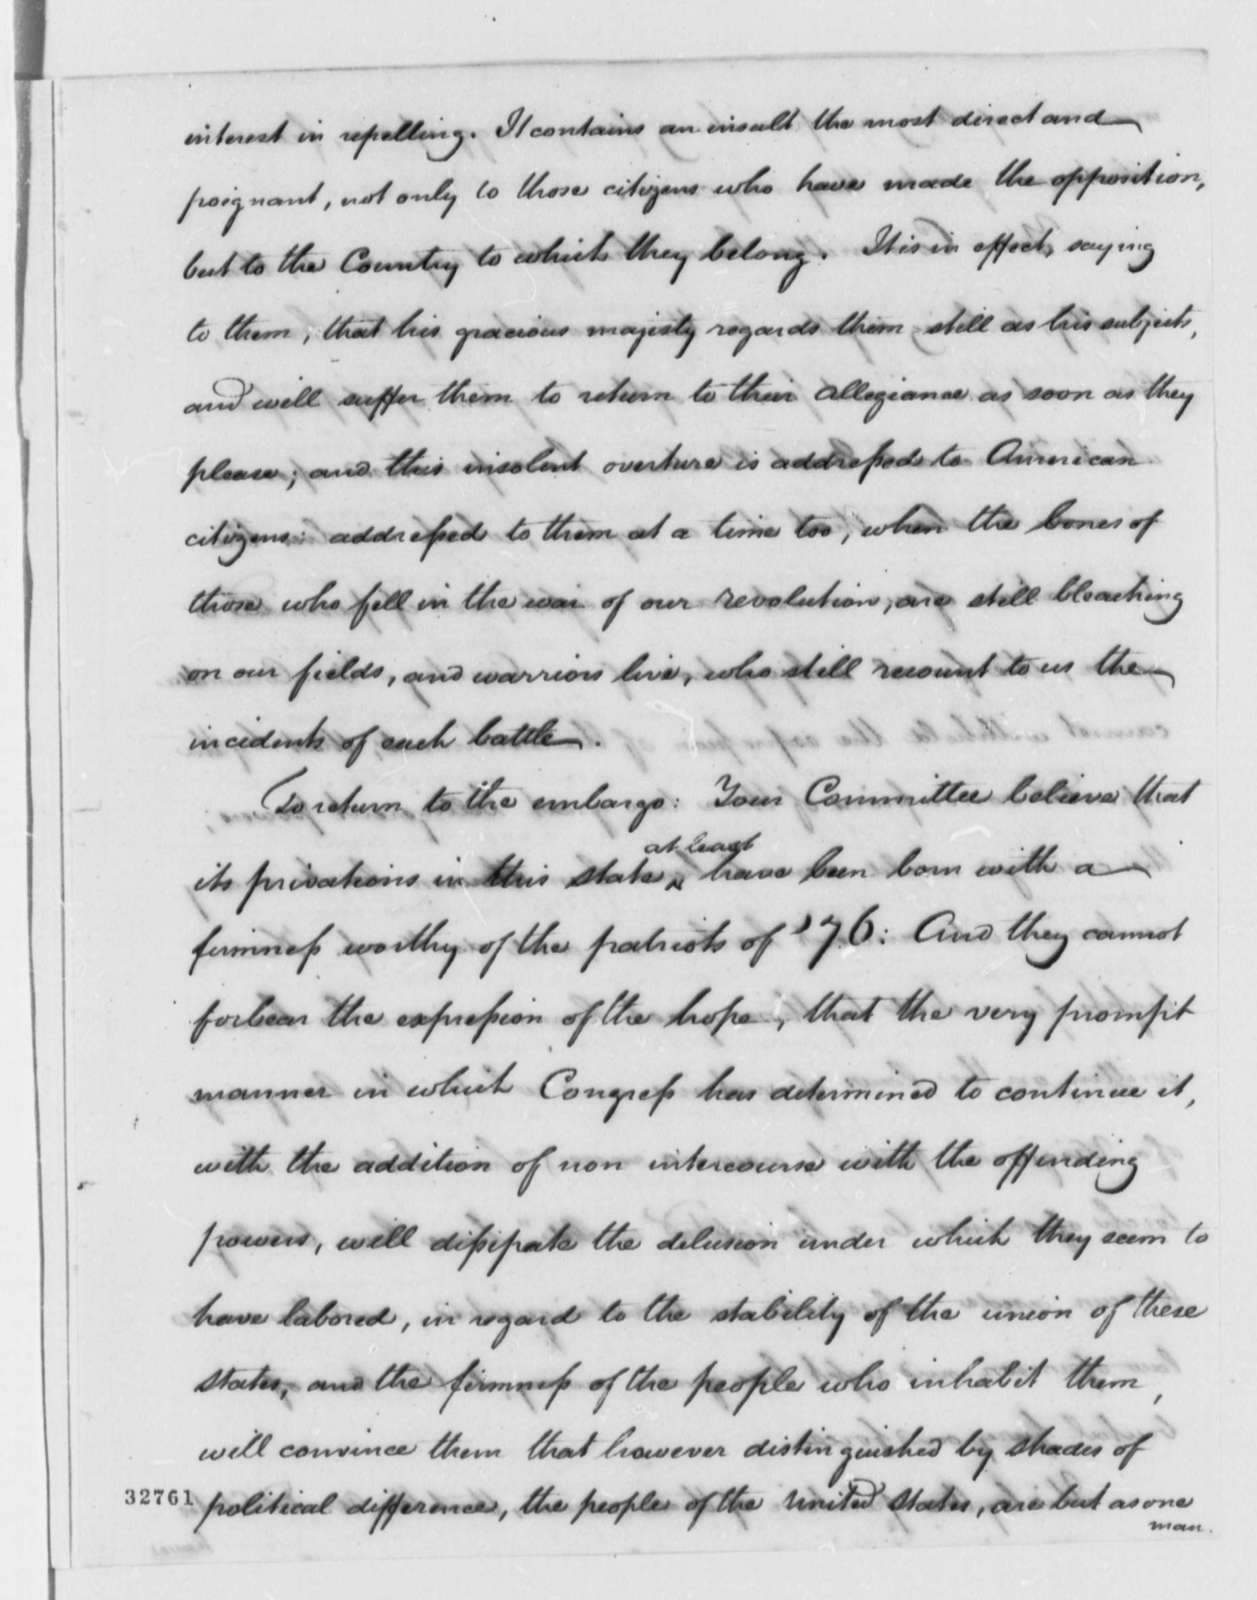 Virginia General Assembly, January 6, 1809, Resolutions on Foreign Relations